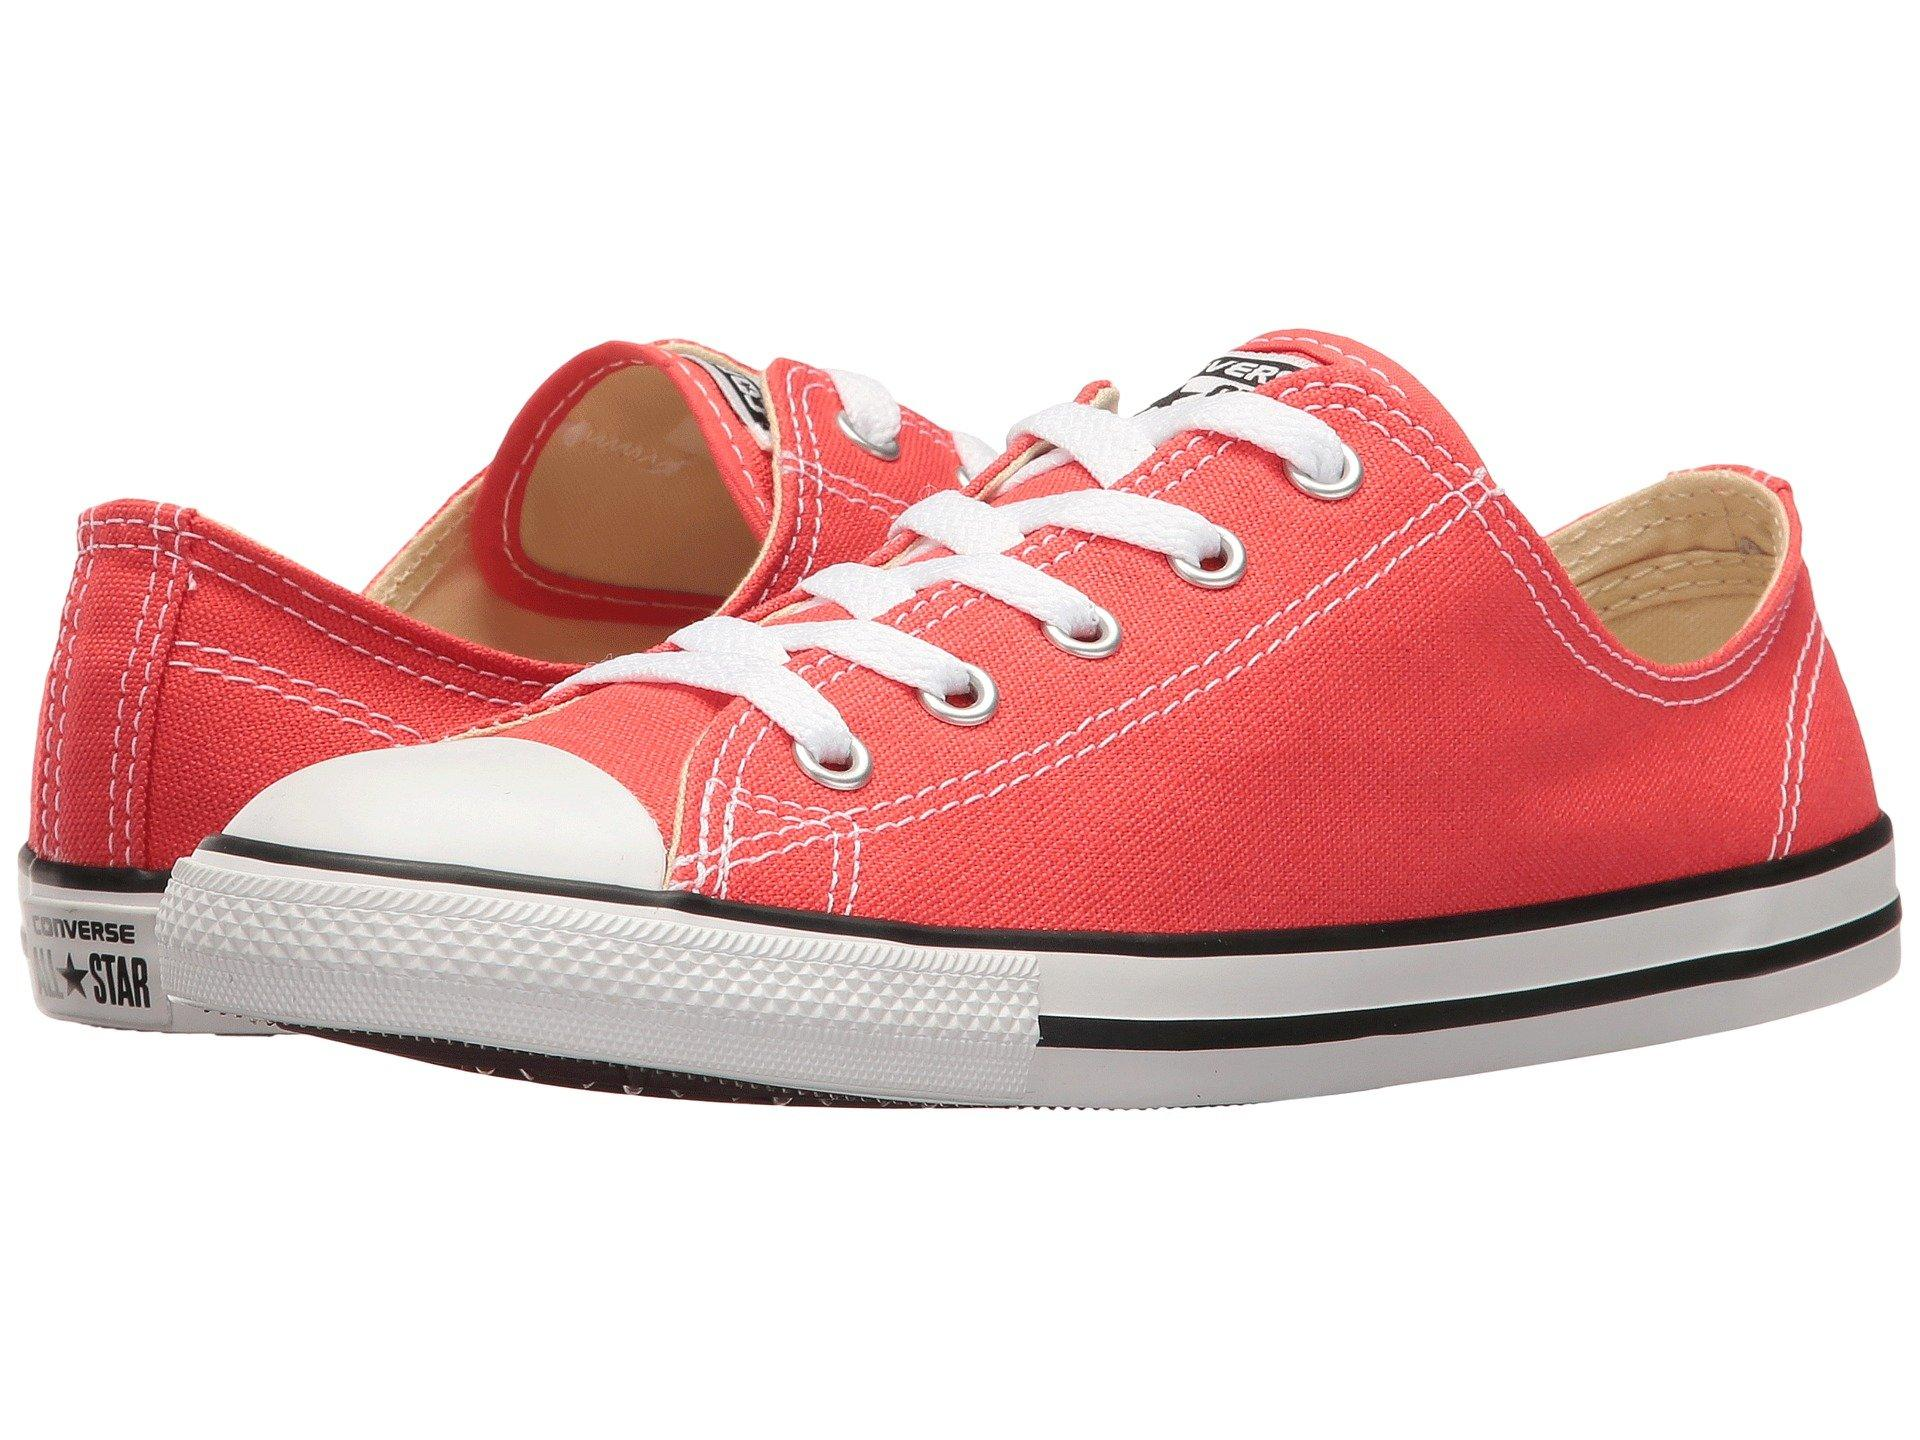 8a589dcbc5a4 Converse Chuck Taylor® All Star® Dainty - Seasonal Ox In Ultra Red Black